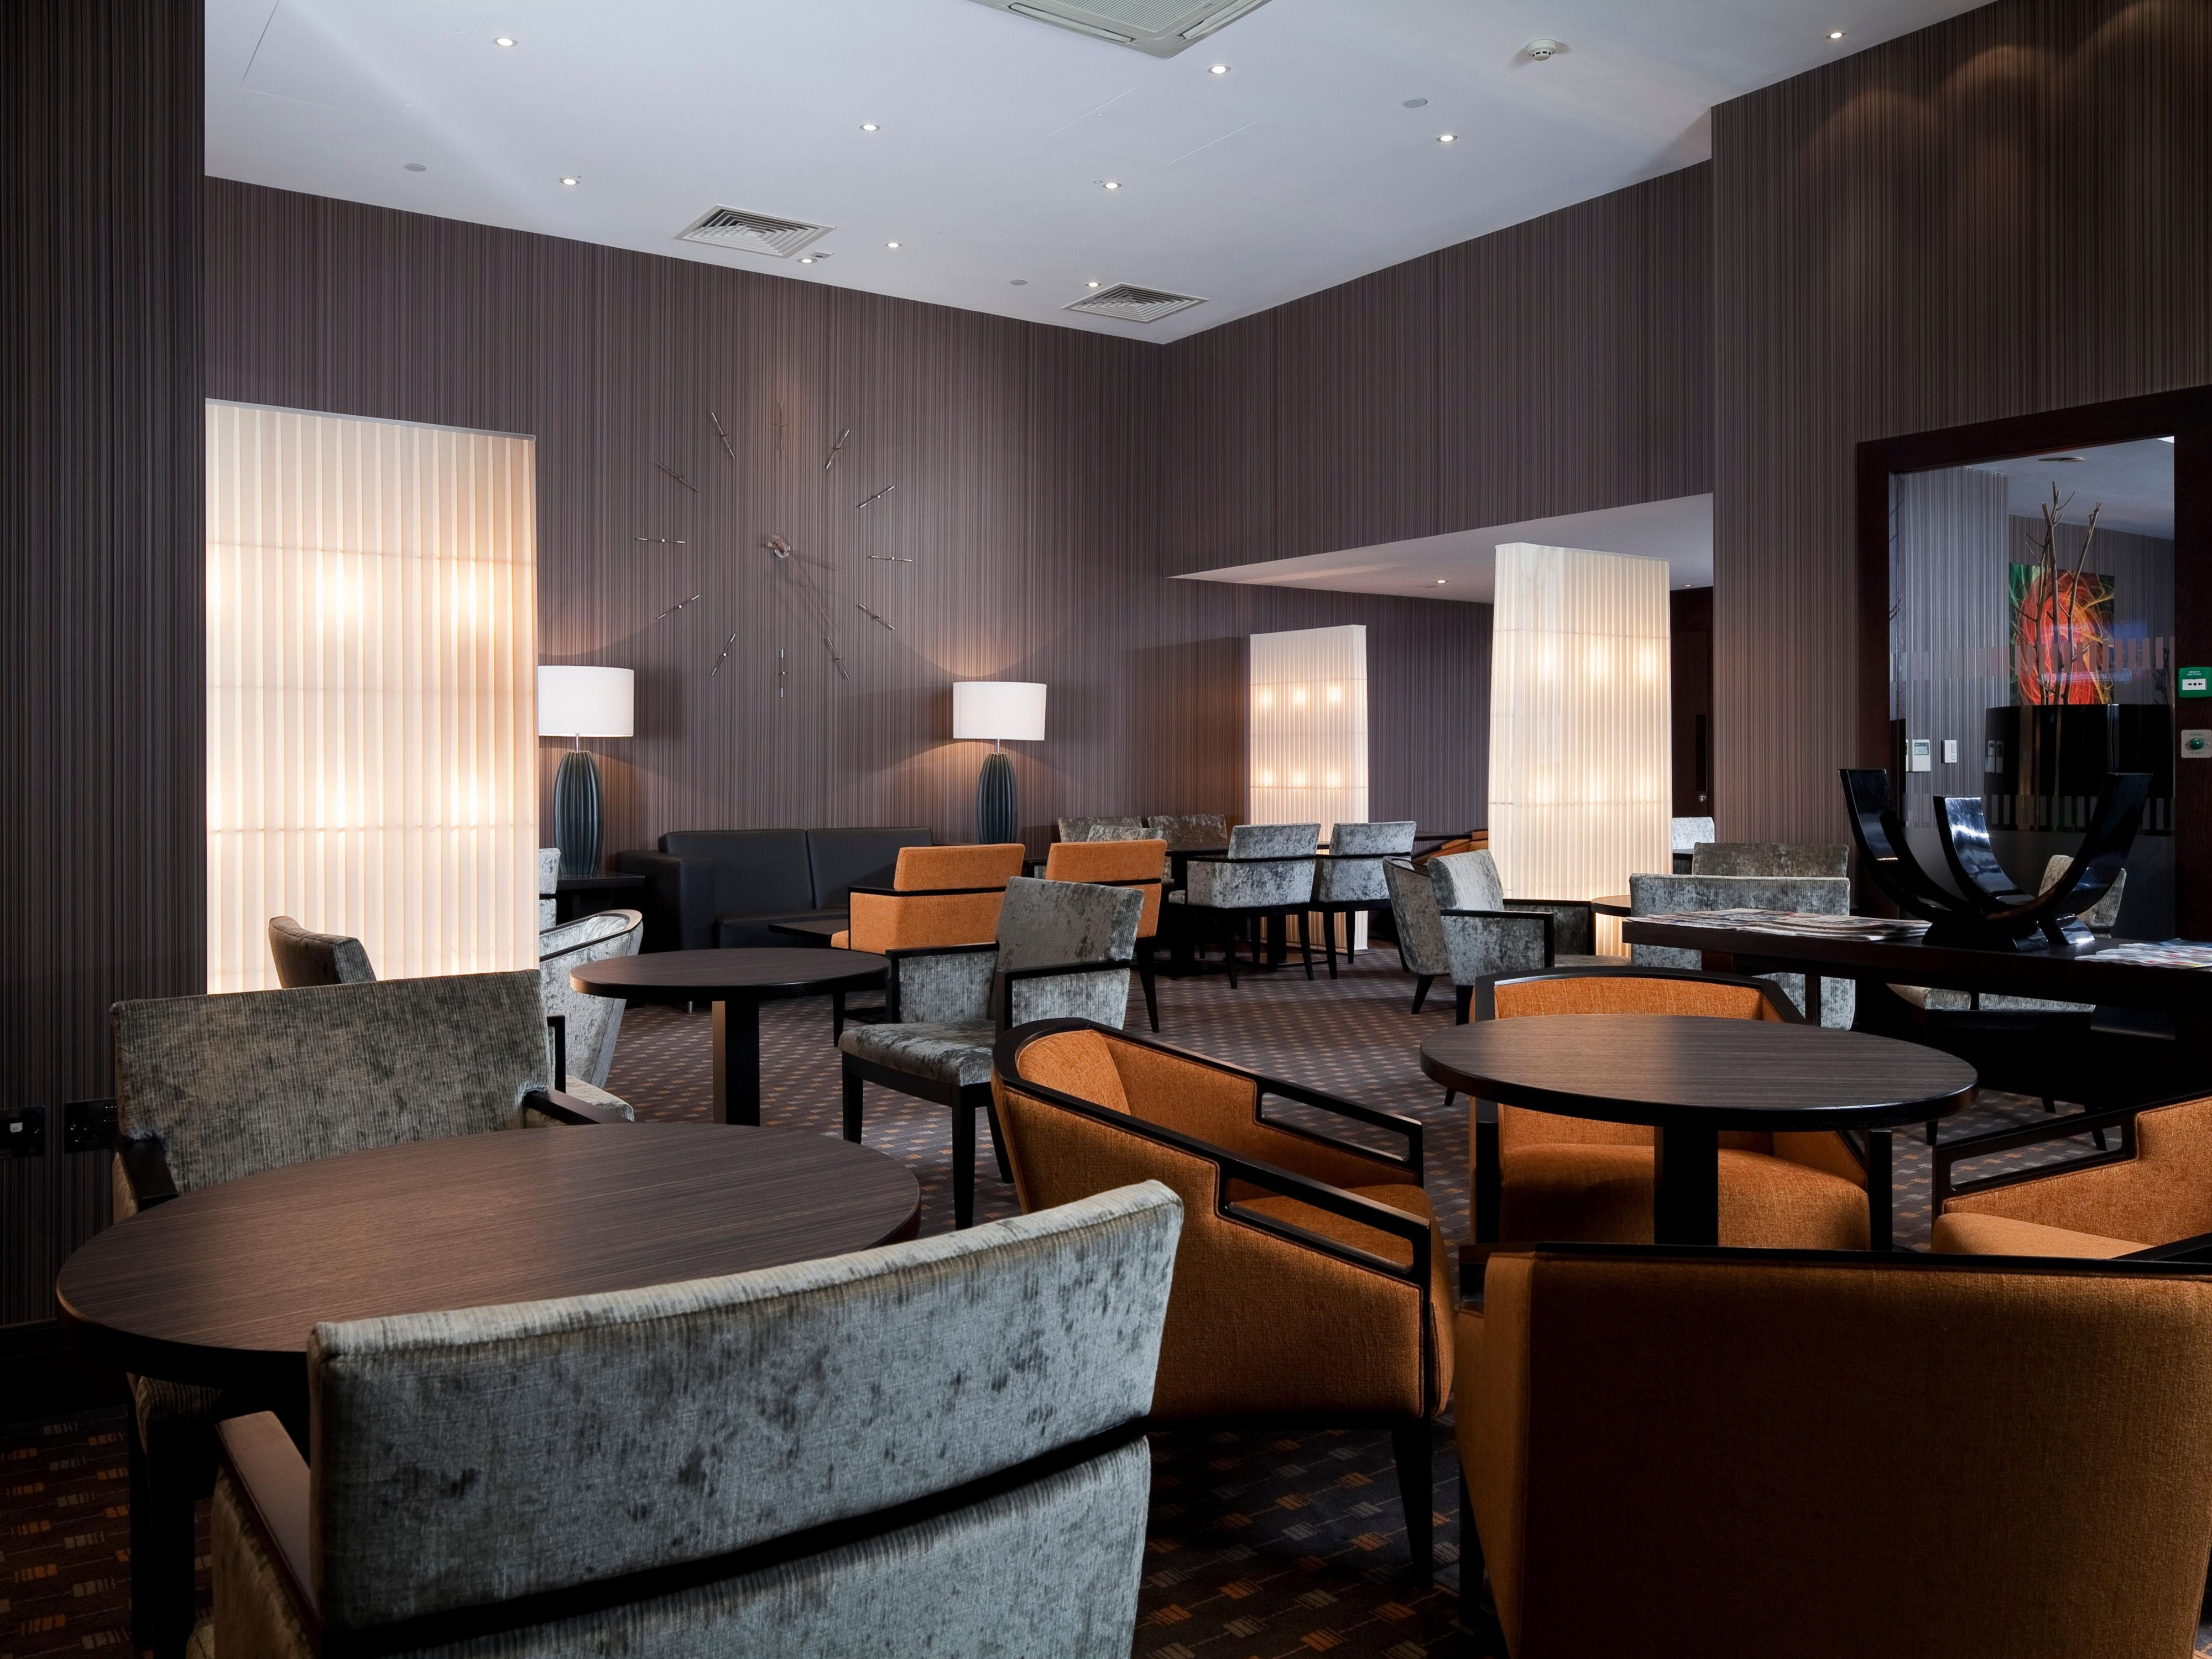 Treat yourself to an upgrade to the brand new business lounge